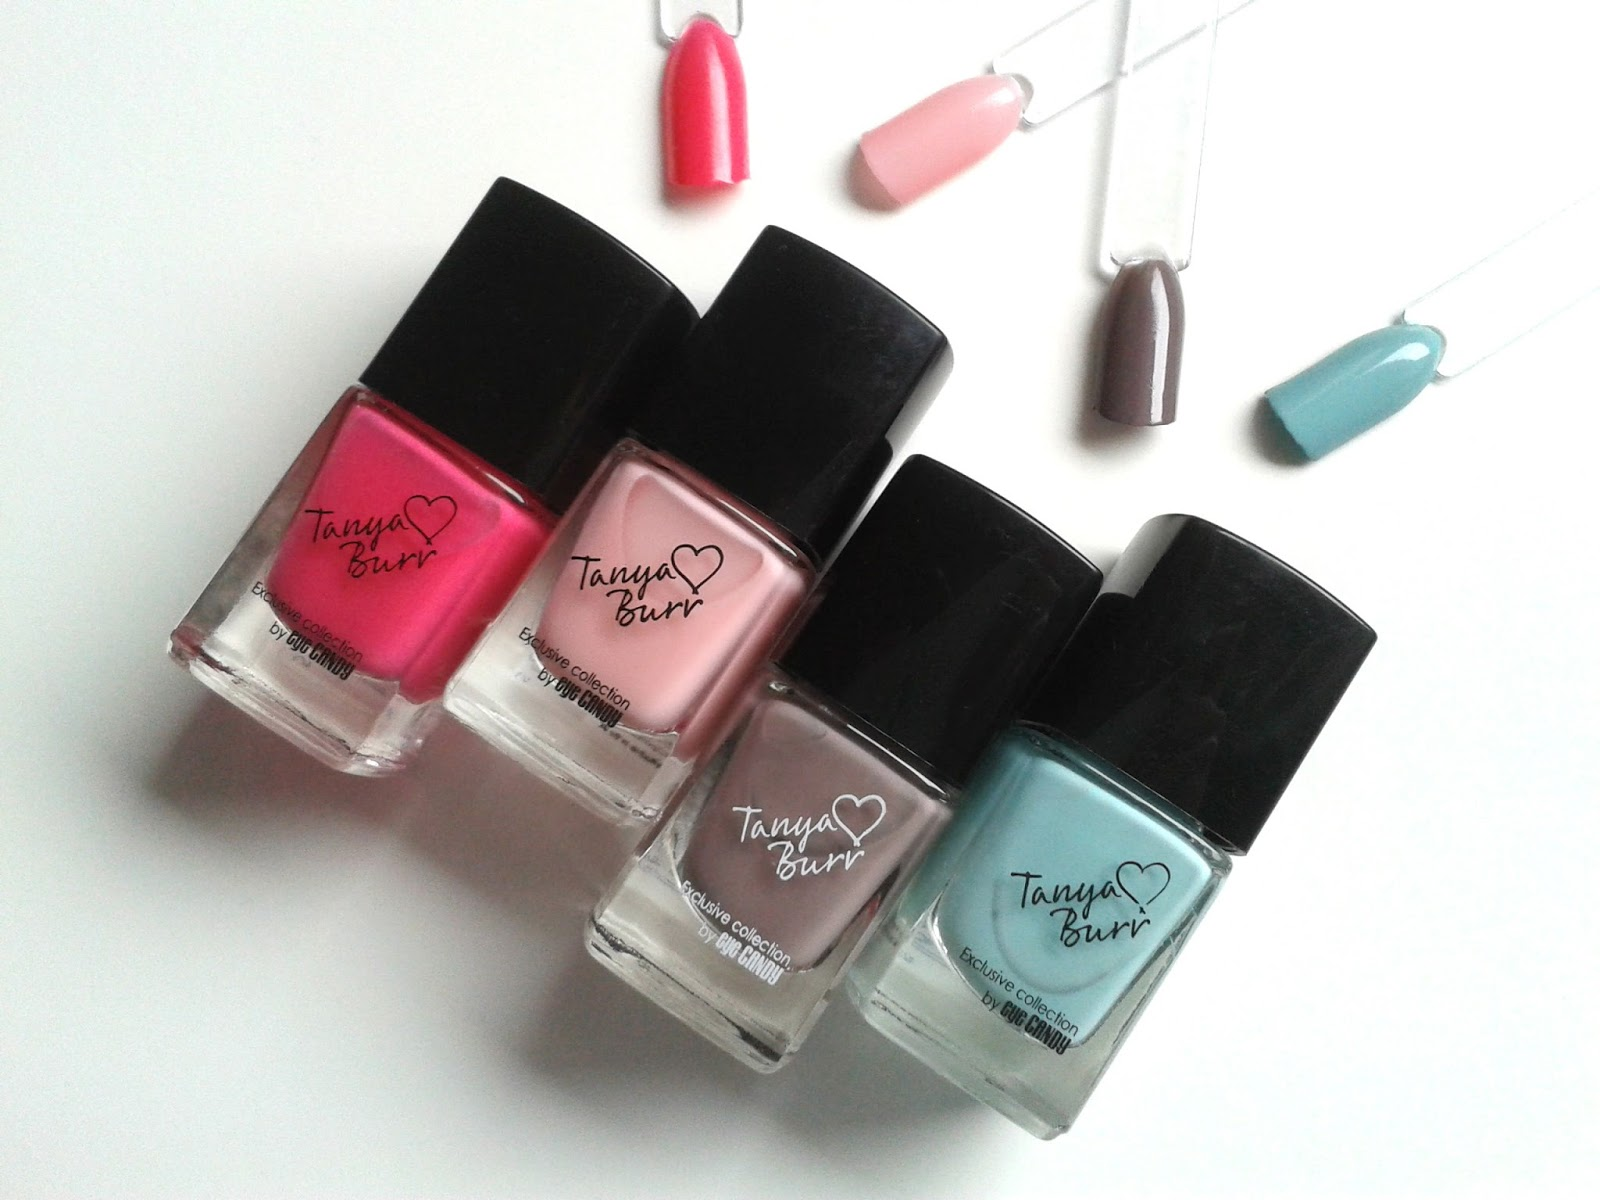 Tanya Burr Lips and Nails Nail Polishes Review Swatch Swatches little duck penguin chic Be Bright Be Happy Be You Mini Marshmallows